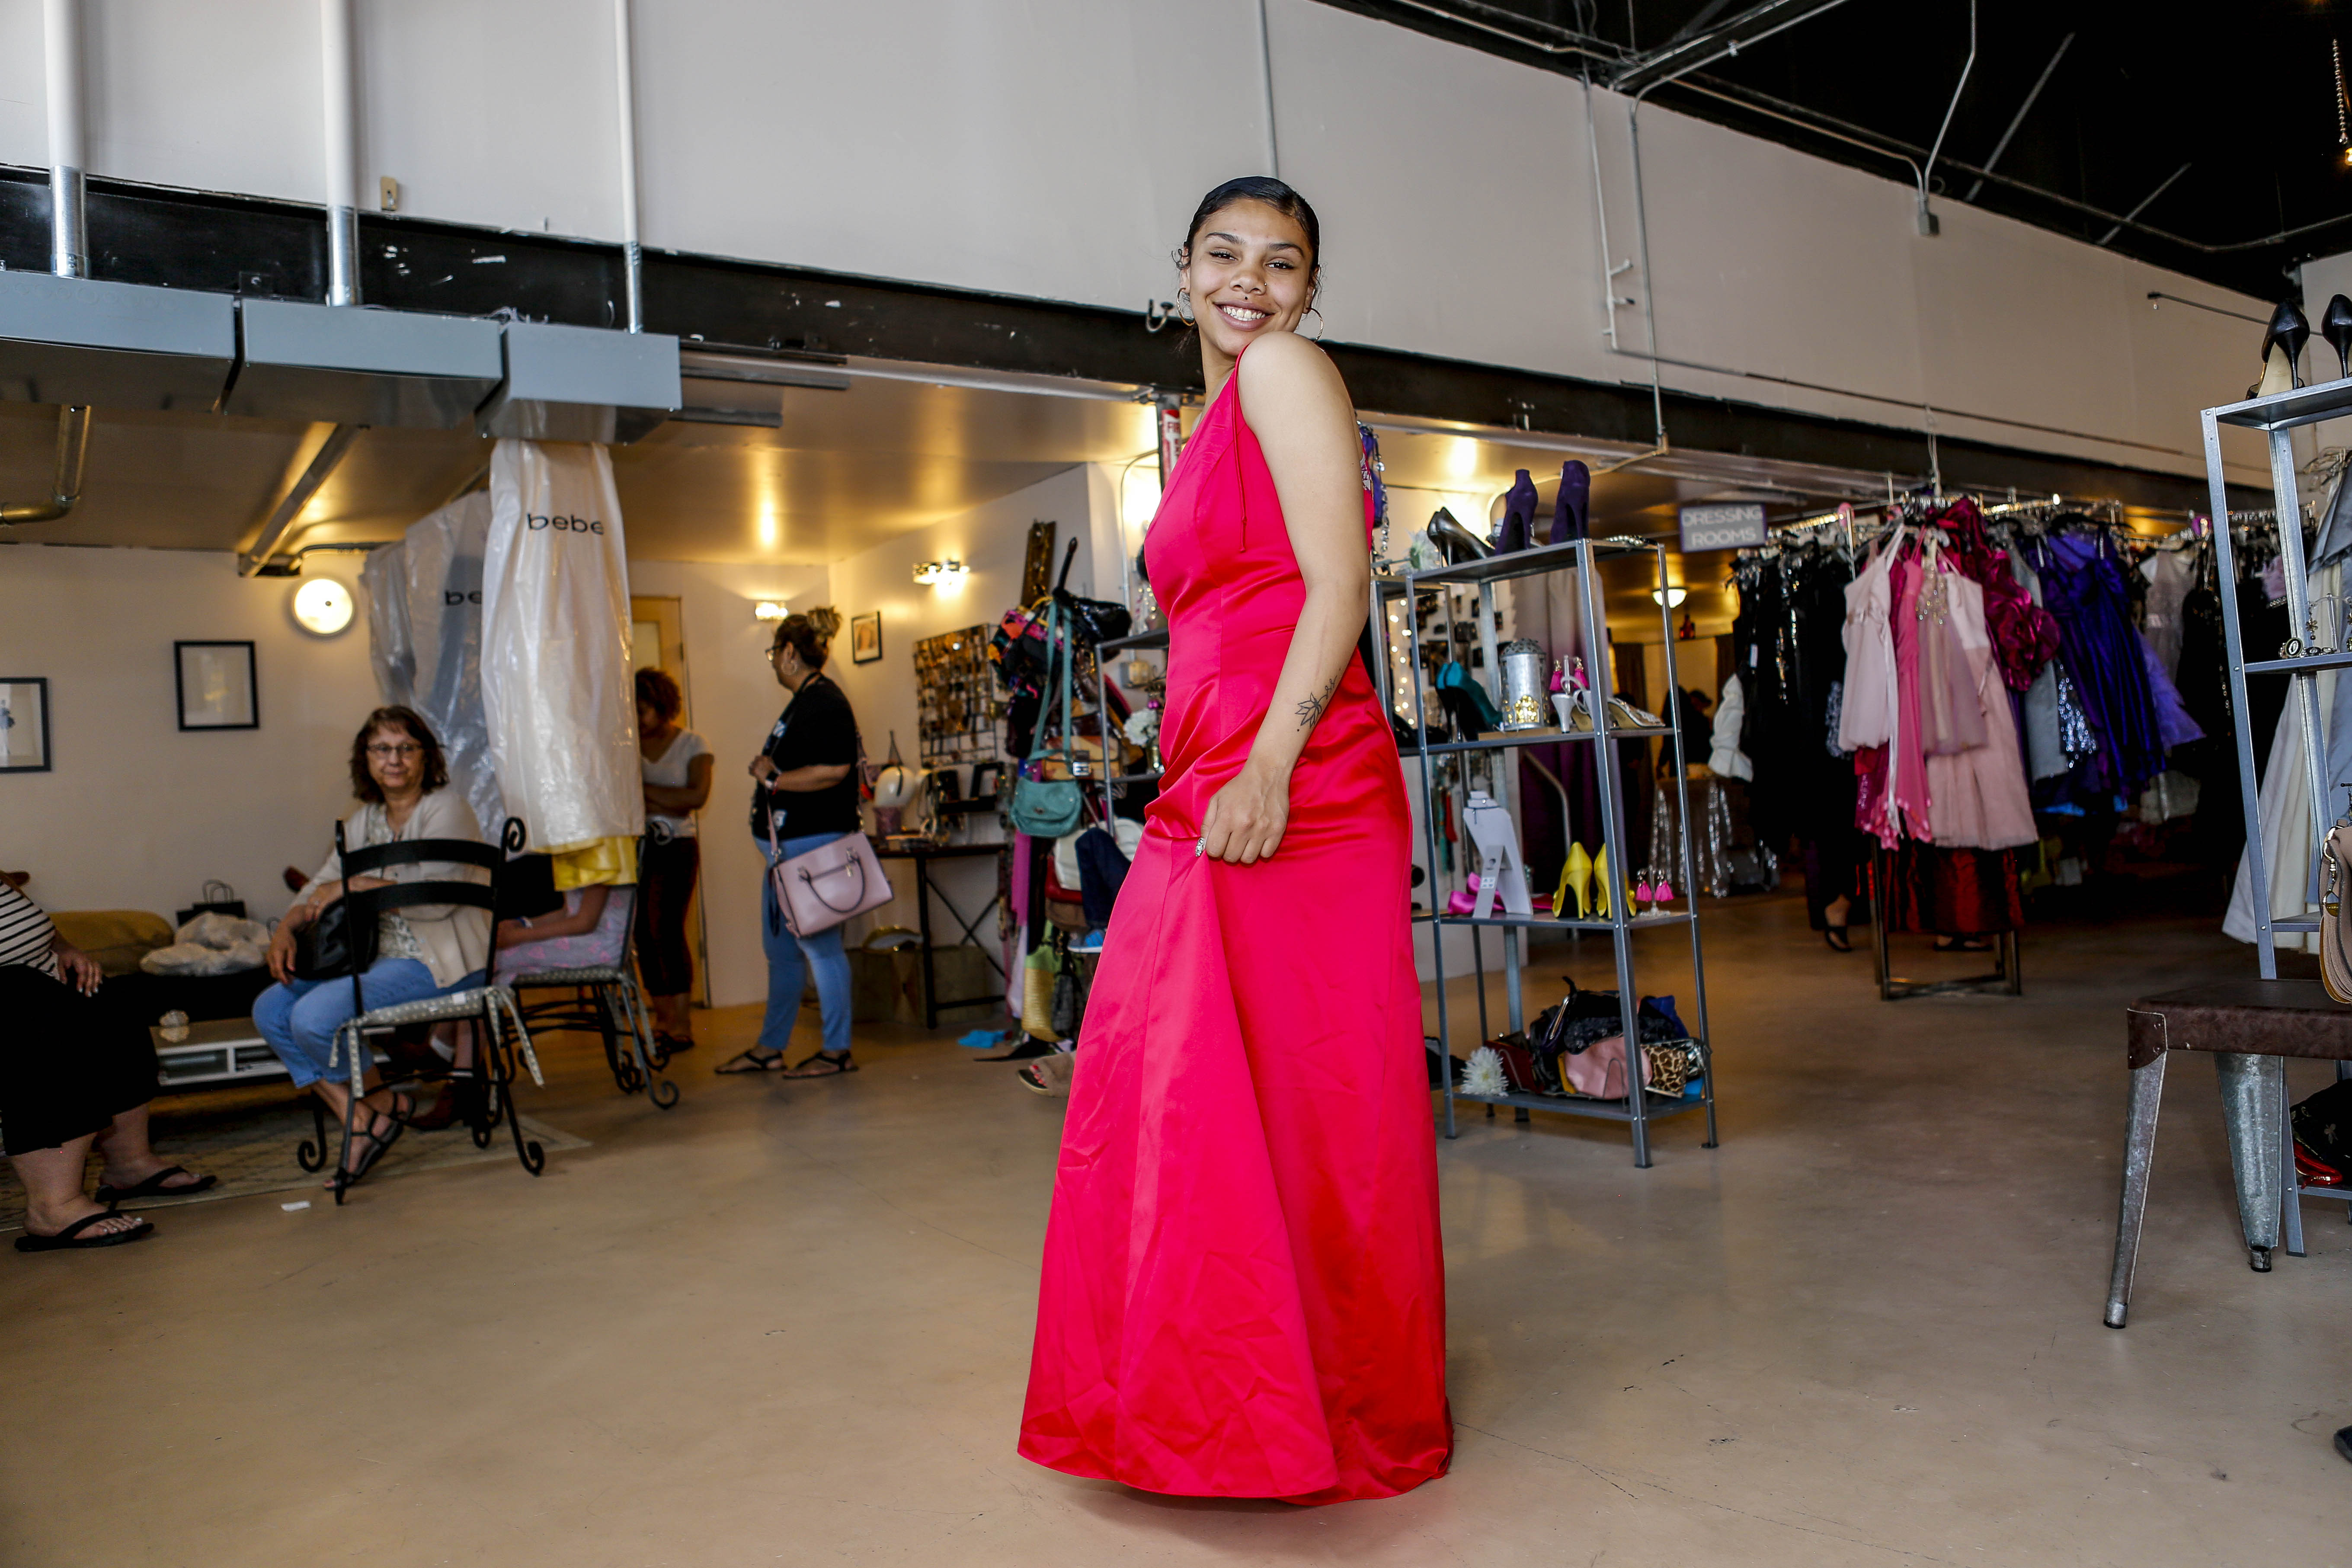 Bella Boutique Gives Away Free Prom Dresses to Teens From Struggling ...